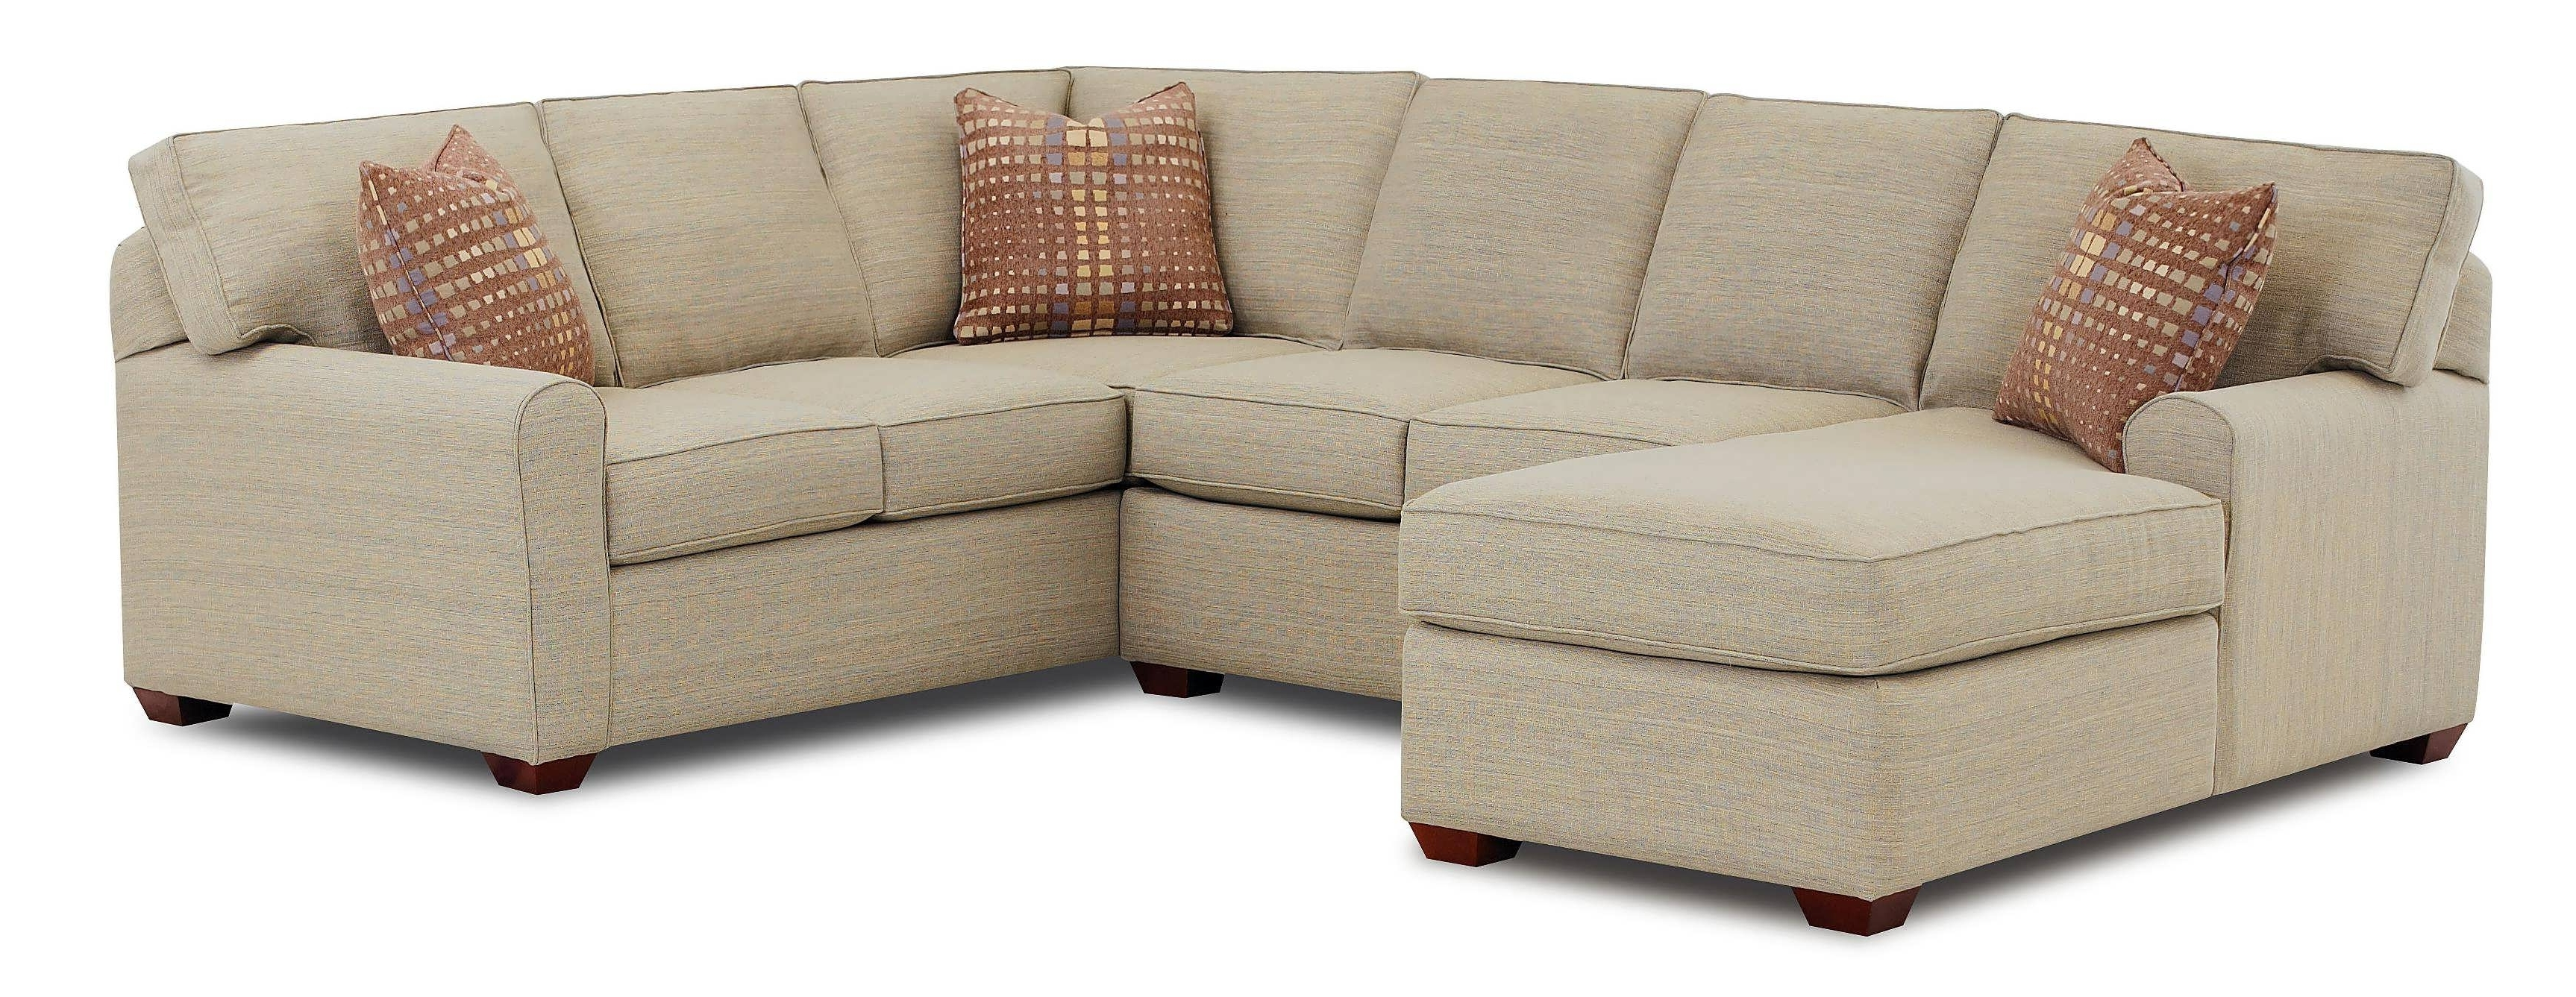 Well Liked Sectional Sofas With Chaise Lounge Intended For Sofa : Chaise Lounge Couch With Chaise Cheap Sectional Sofas (View 11 of 15)